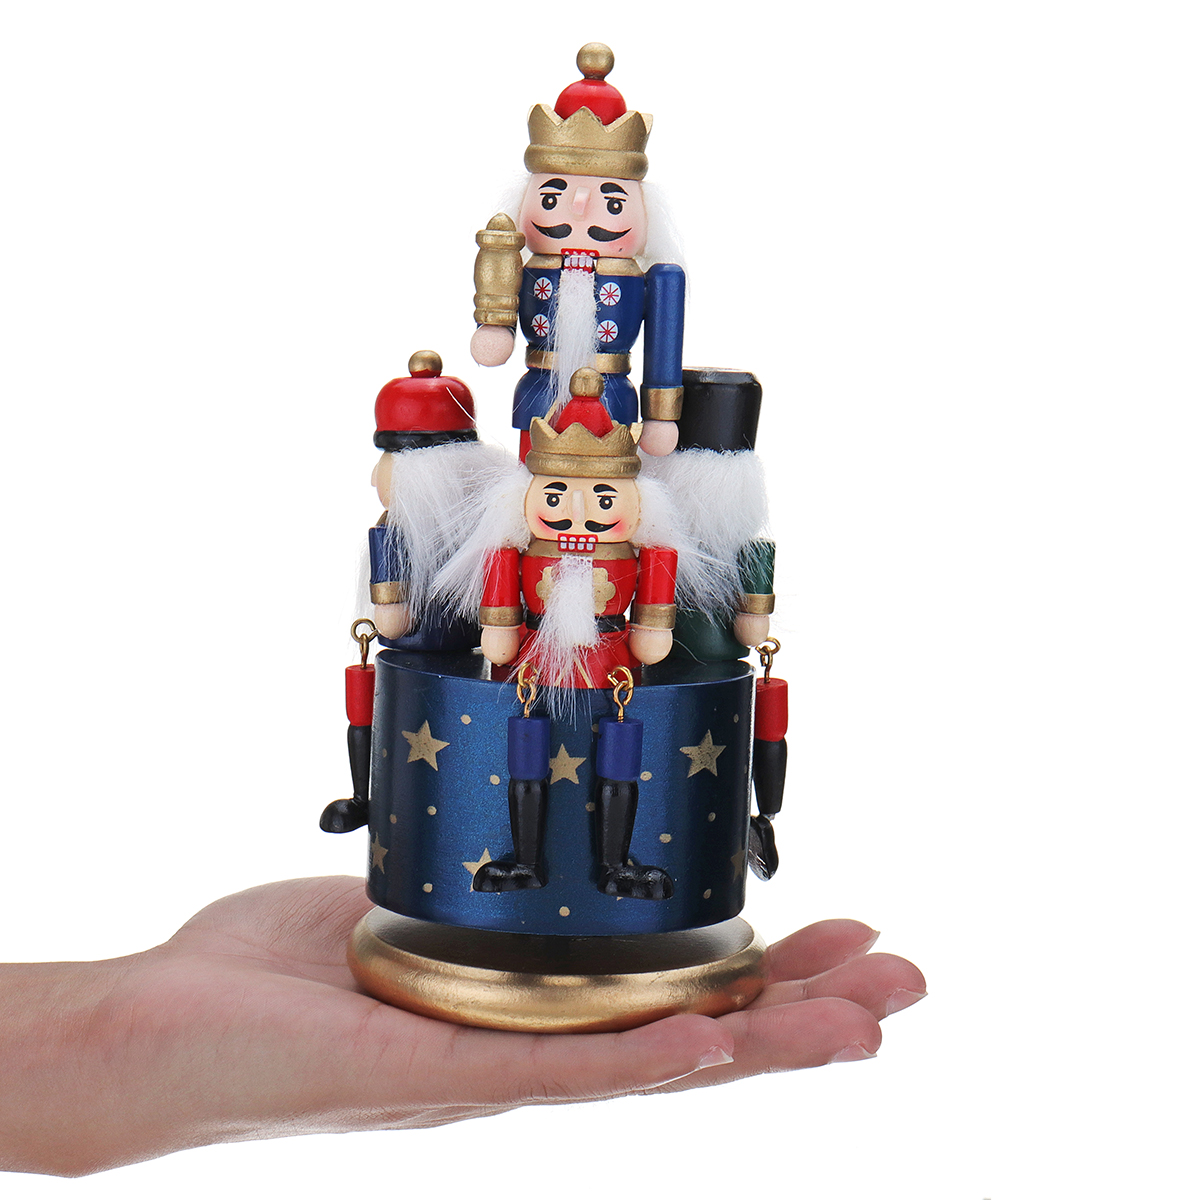 Wooden Guard Nutcracker 4 Soldier Toy Music Box Christmas Decor Christmas Gift 21cm Wooden Nutcracker Doll Puppet Music Boxes Солдат